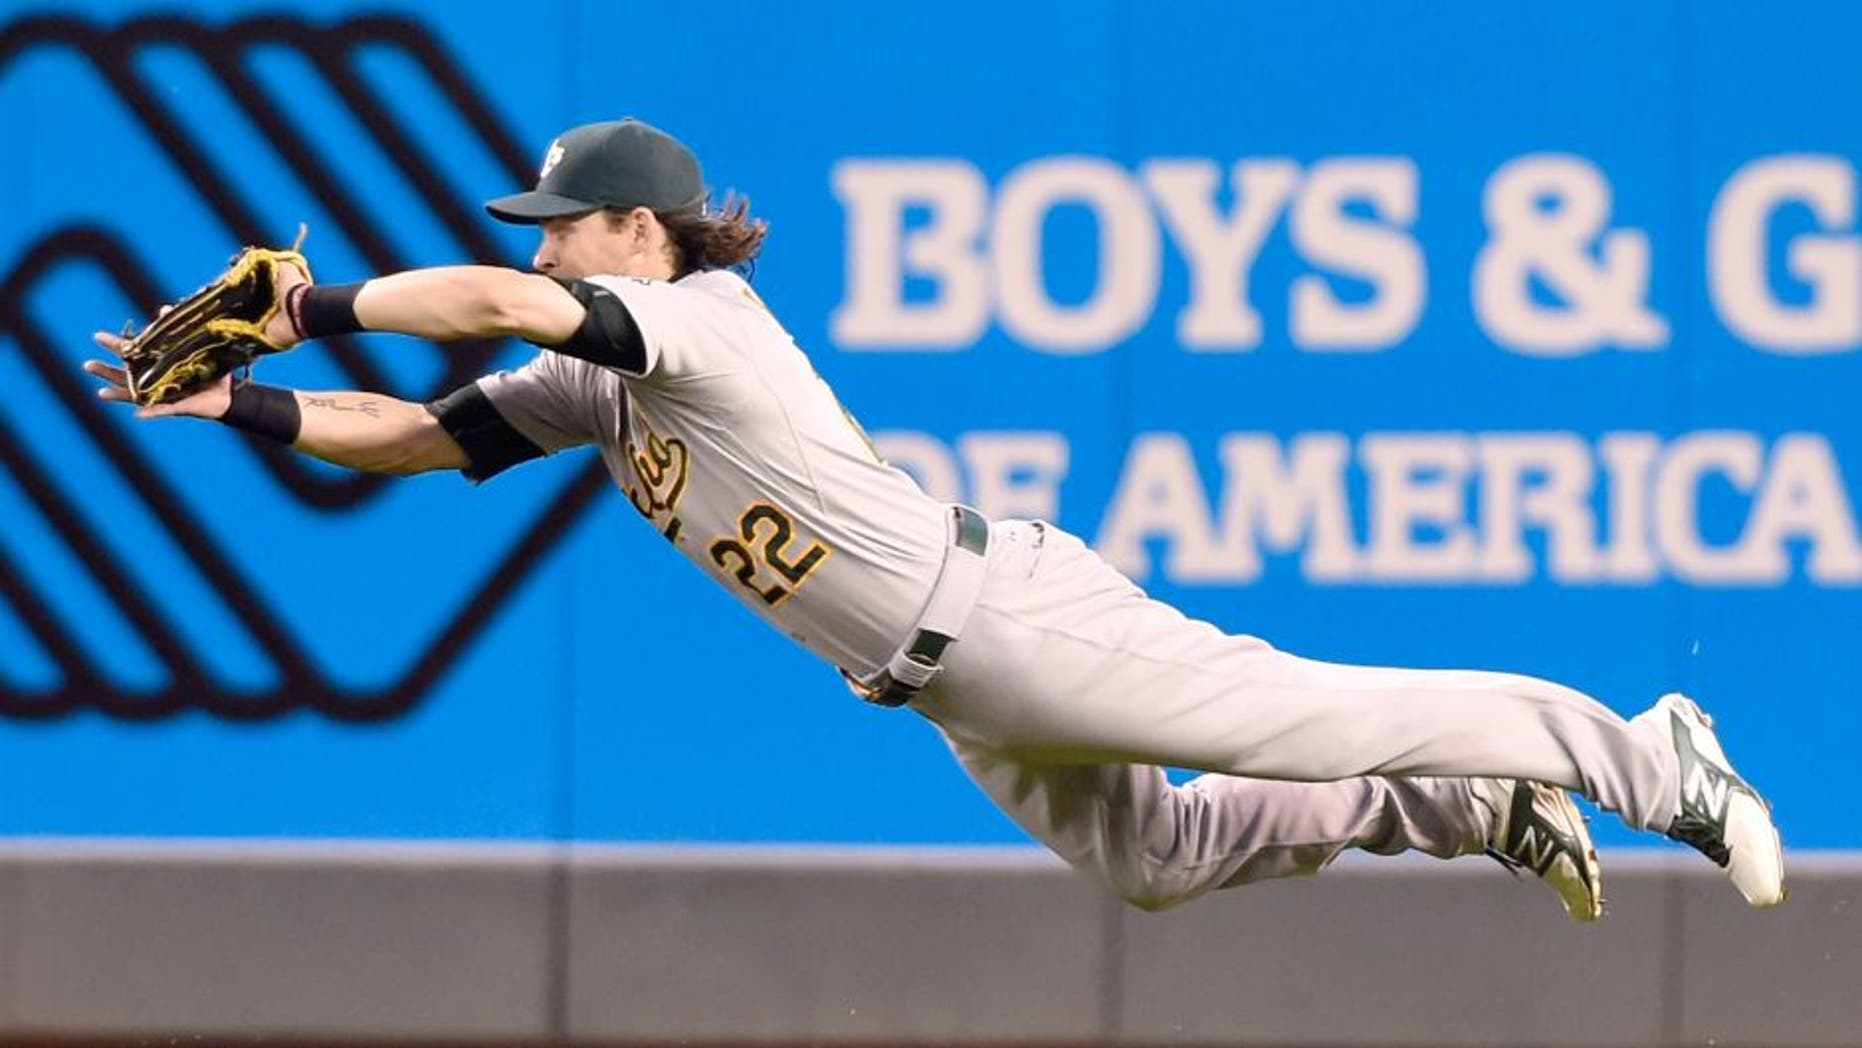 MINNEAPOLIS, MN - MAY 6: Josh Reddick #22 of the Oakland Athletics makes a diving catch in right field on a ball off the bat of Brian Dozier #2 of the Minnesota Twins in the fifth inning of the game on May 6, 2015 at Target Field in Minneapolis, Minnesota. The Twins defeated Athletics 13-0.(Photo by Hannah Foslien/Getty Images)